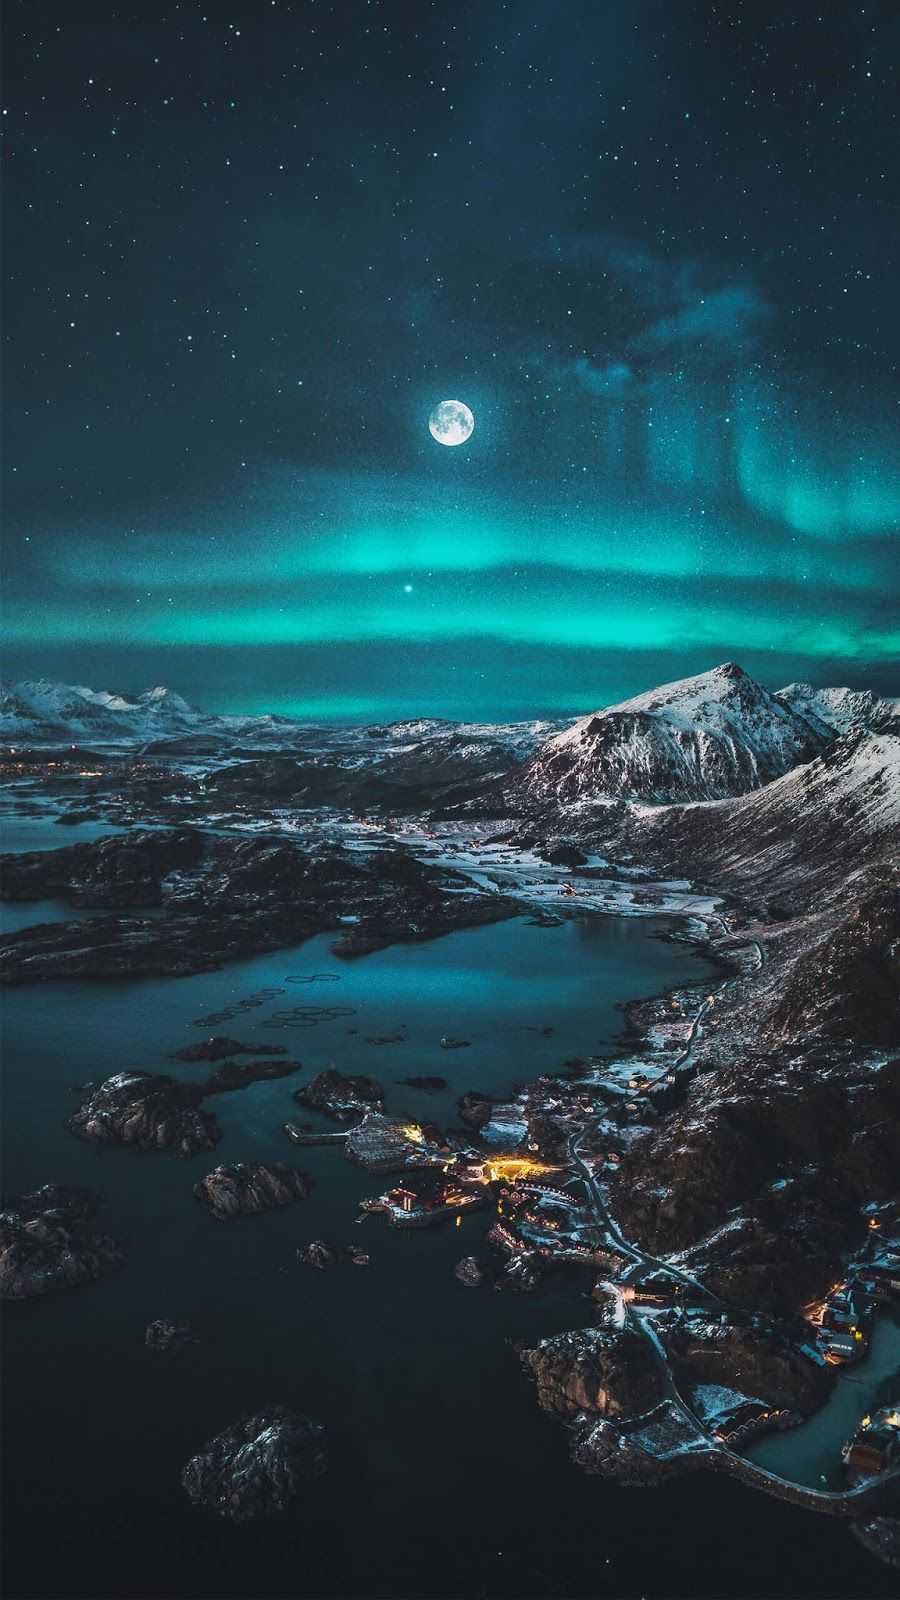 Calm Night Wallpaper Iphone Android Background Followme Northern Lights Wallpaper Landscape Wallpaper Best Nature Wallpapers